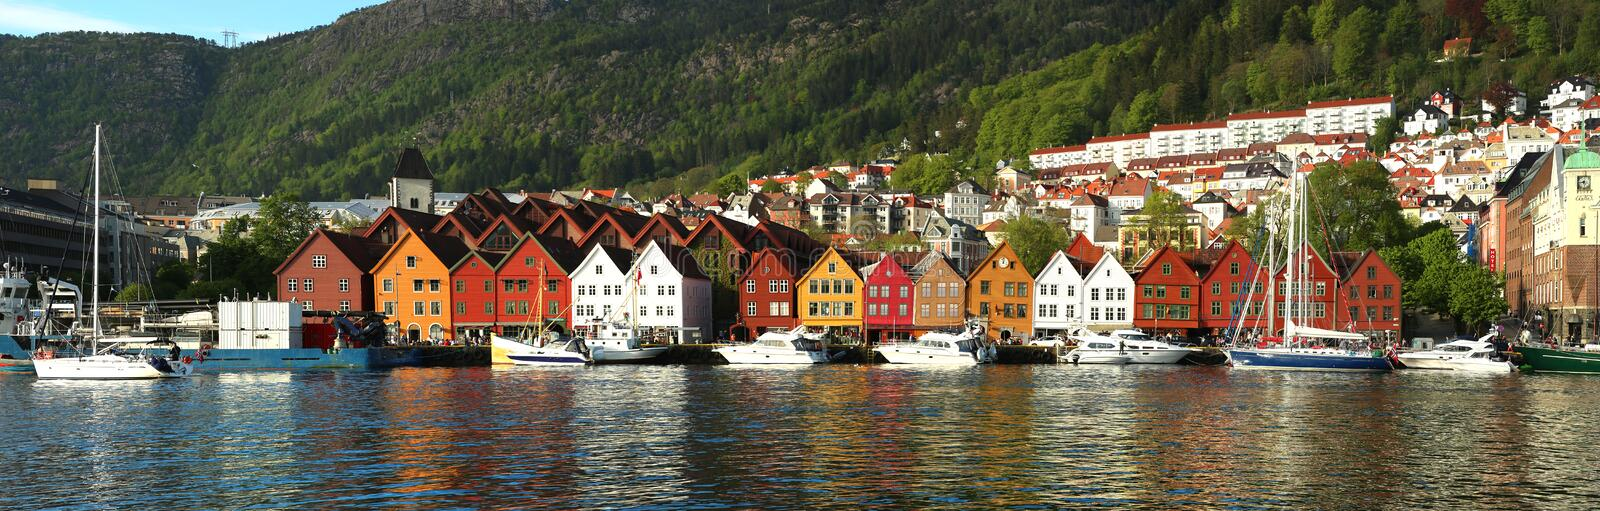 Bunte Häuser in Bergen in Norwegen stockfoto